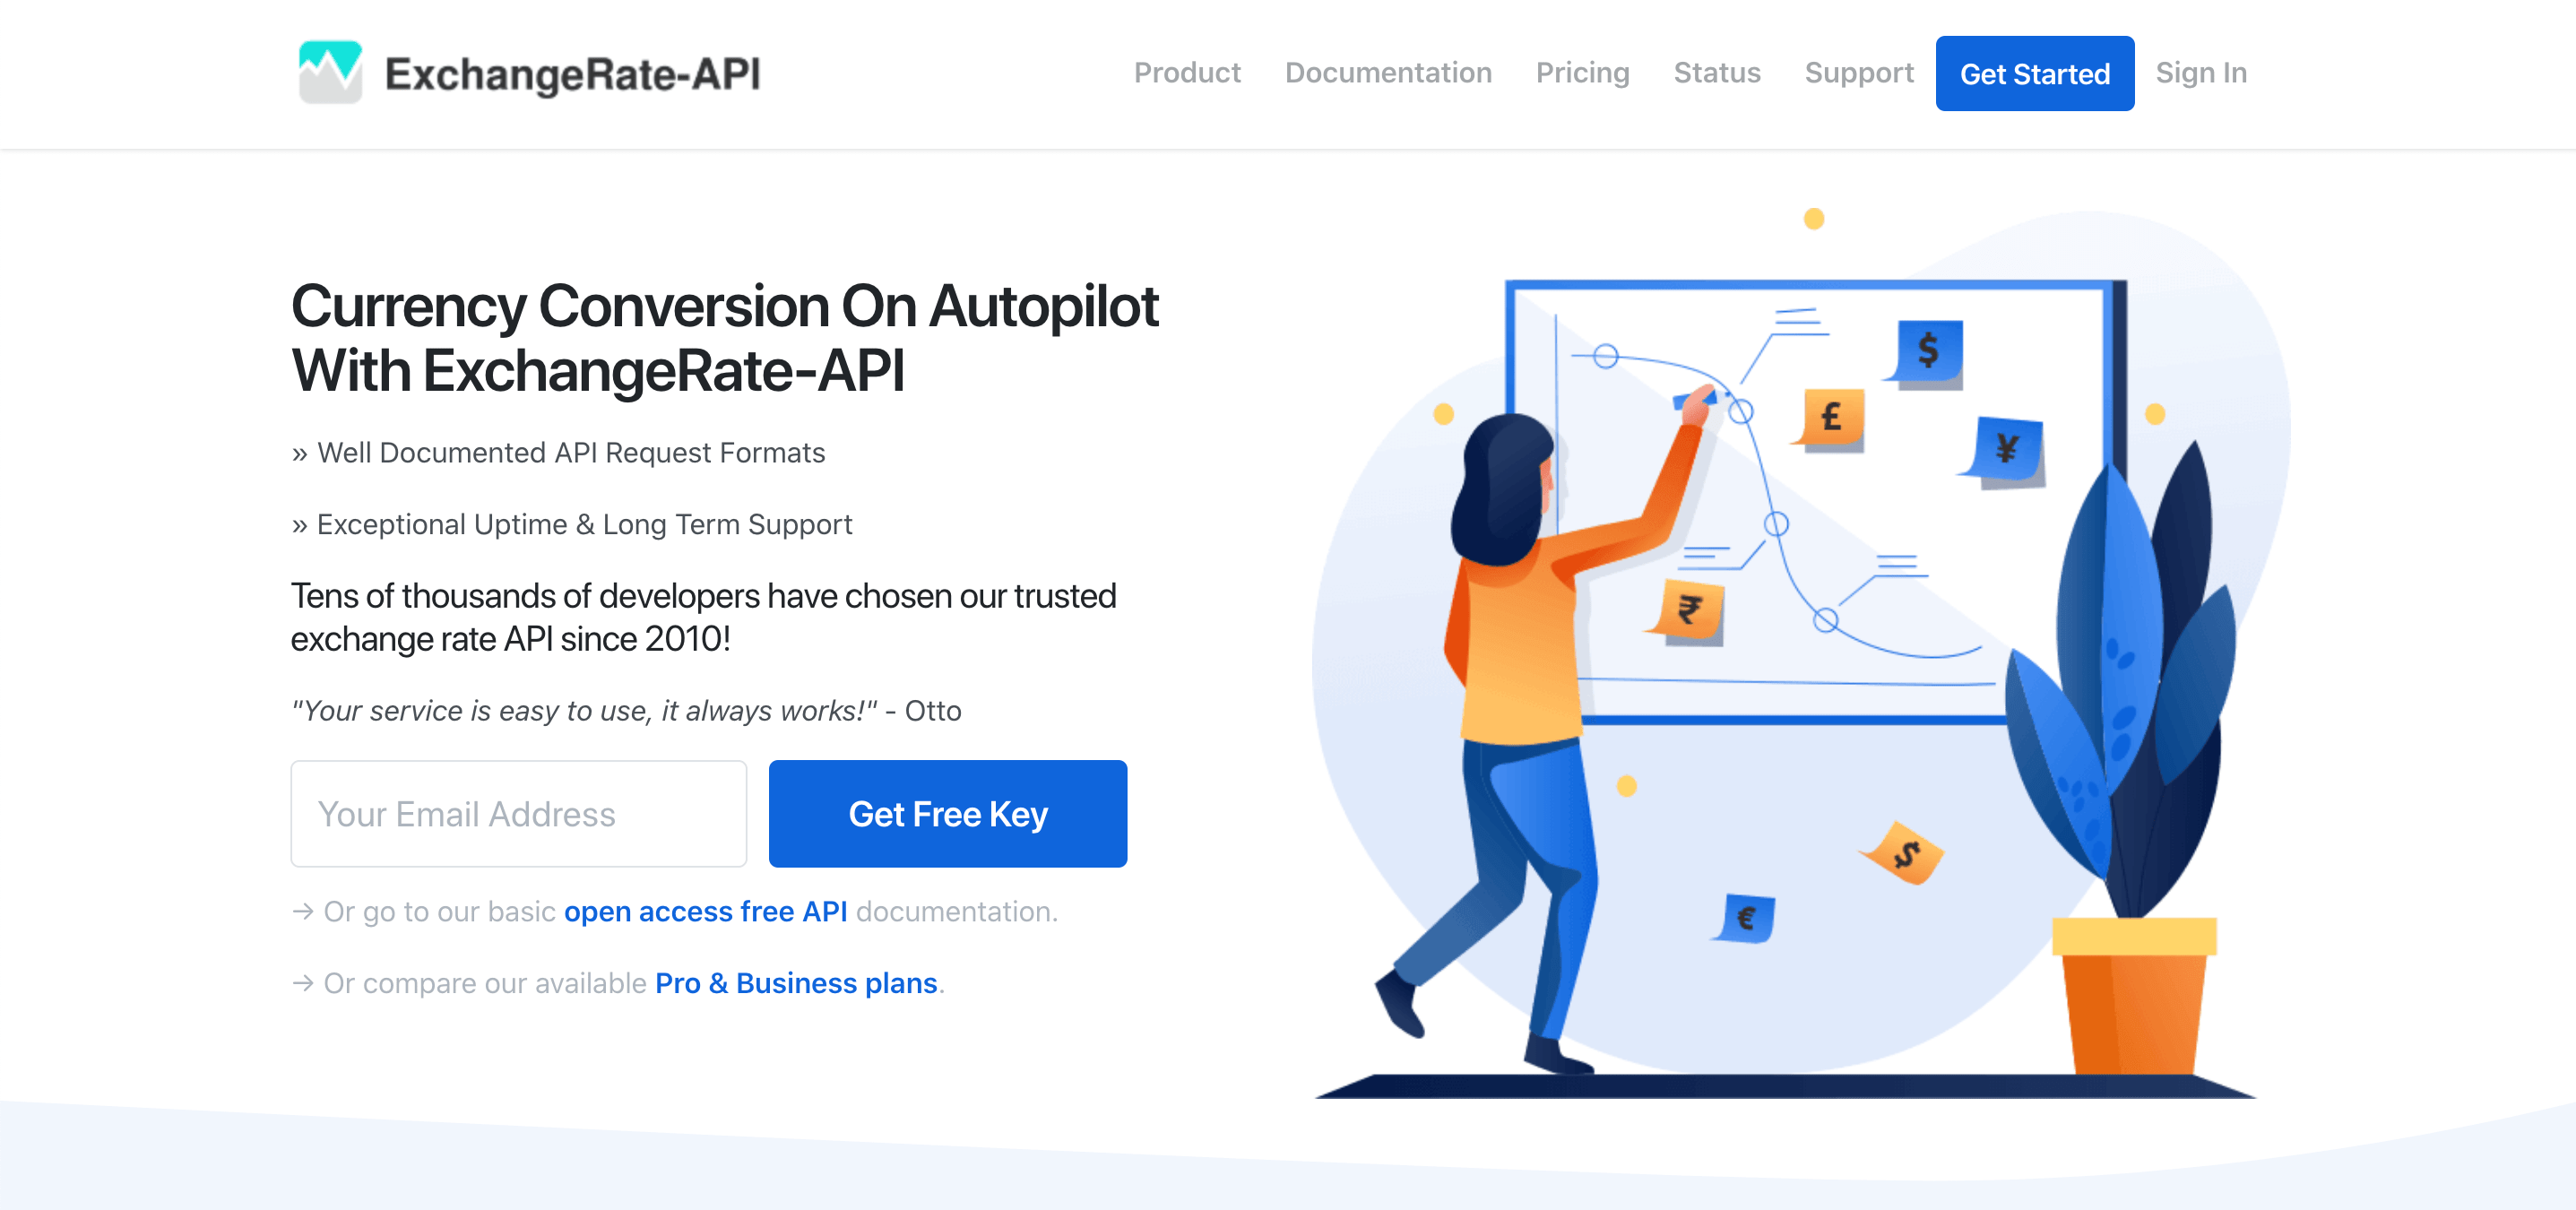 ExchangeRate API for developers operating since 2010